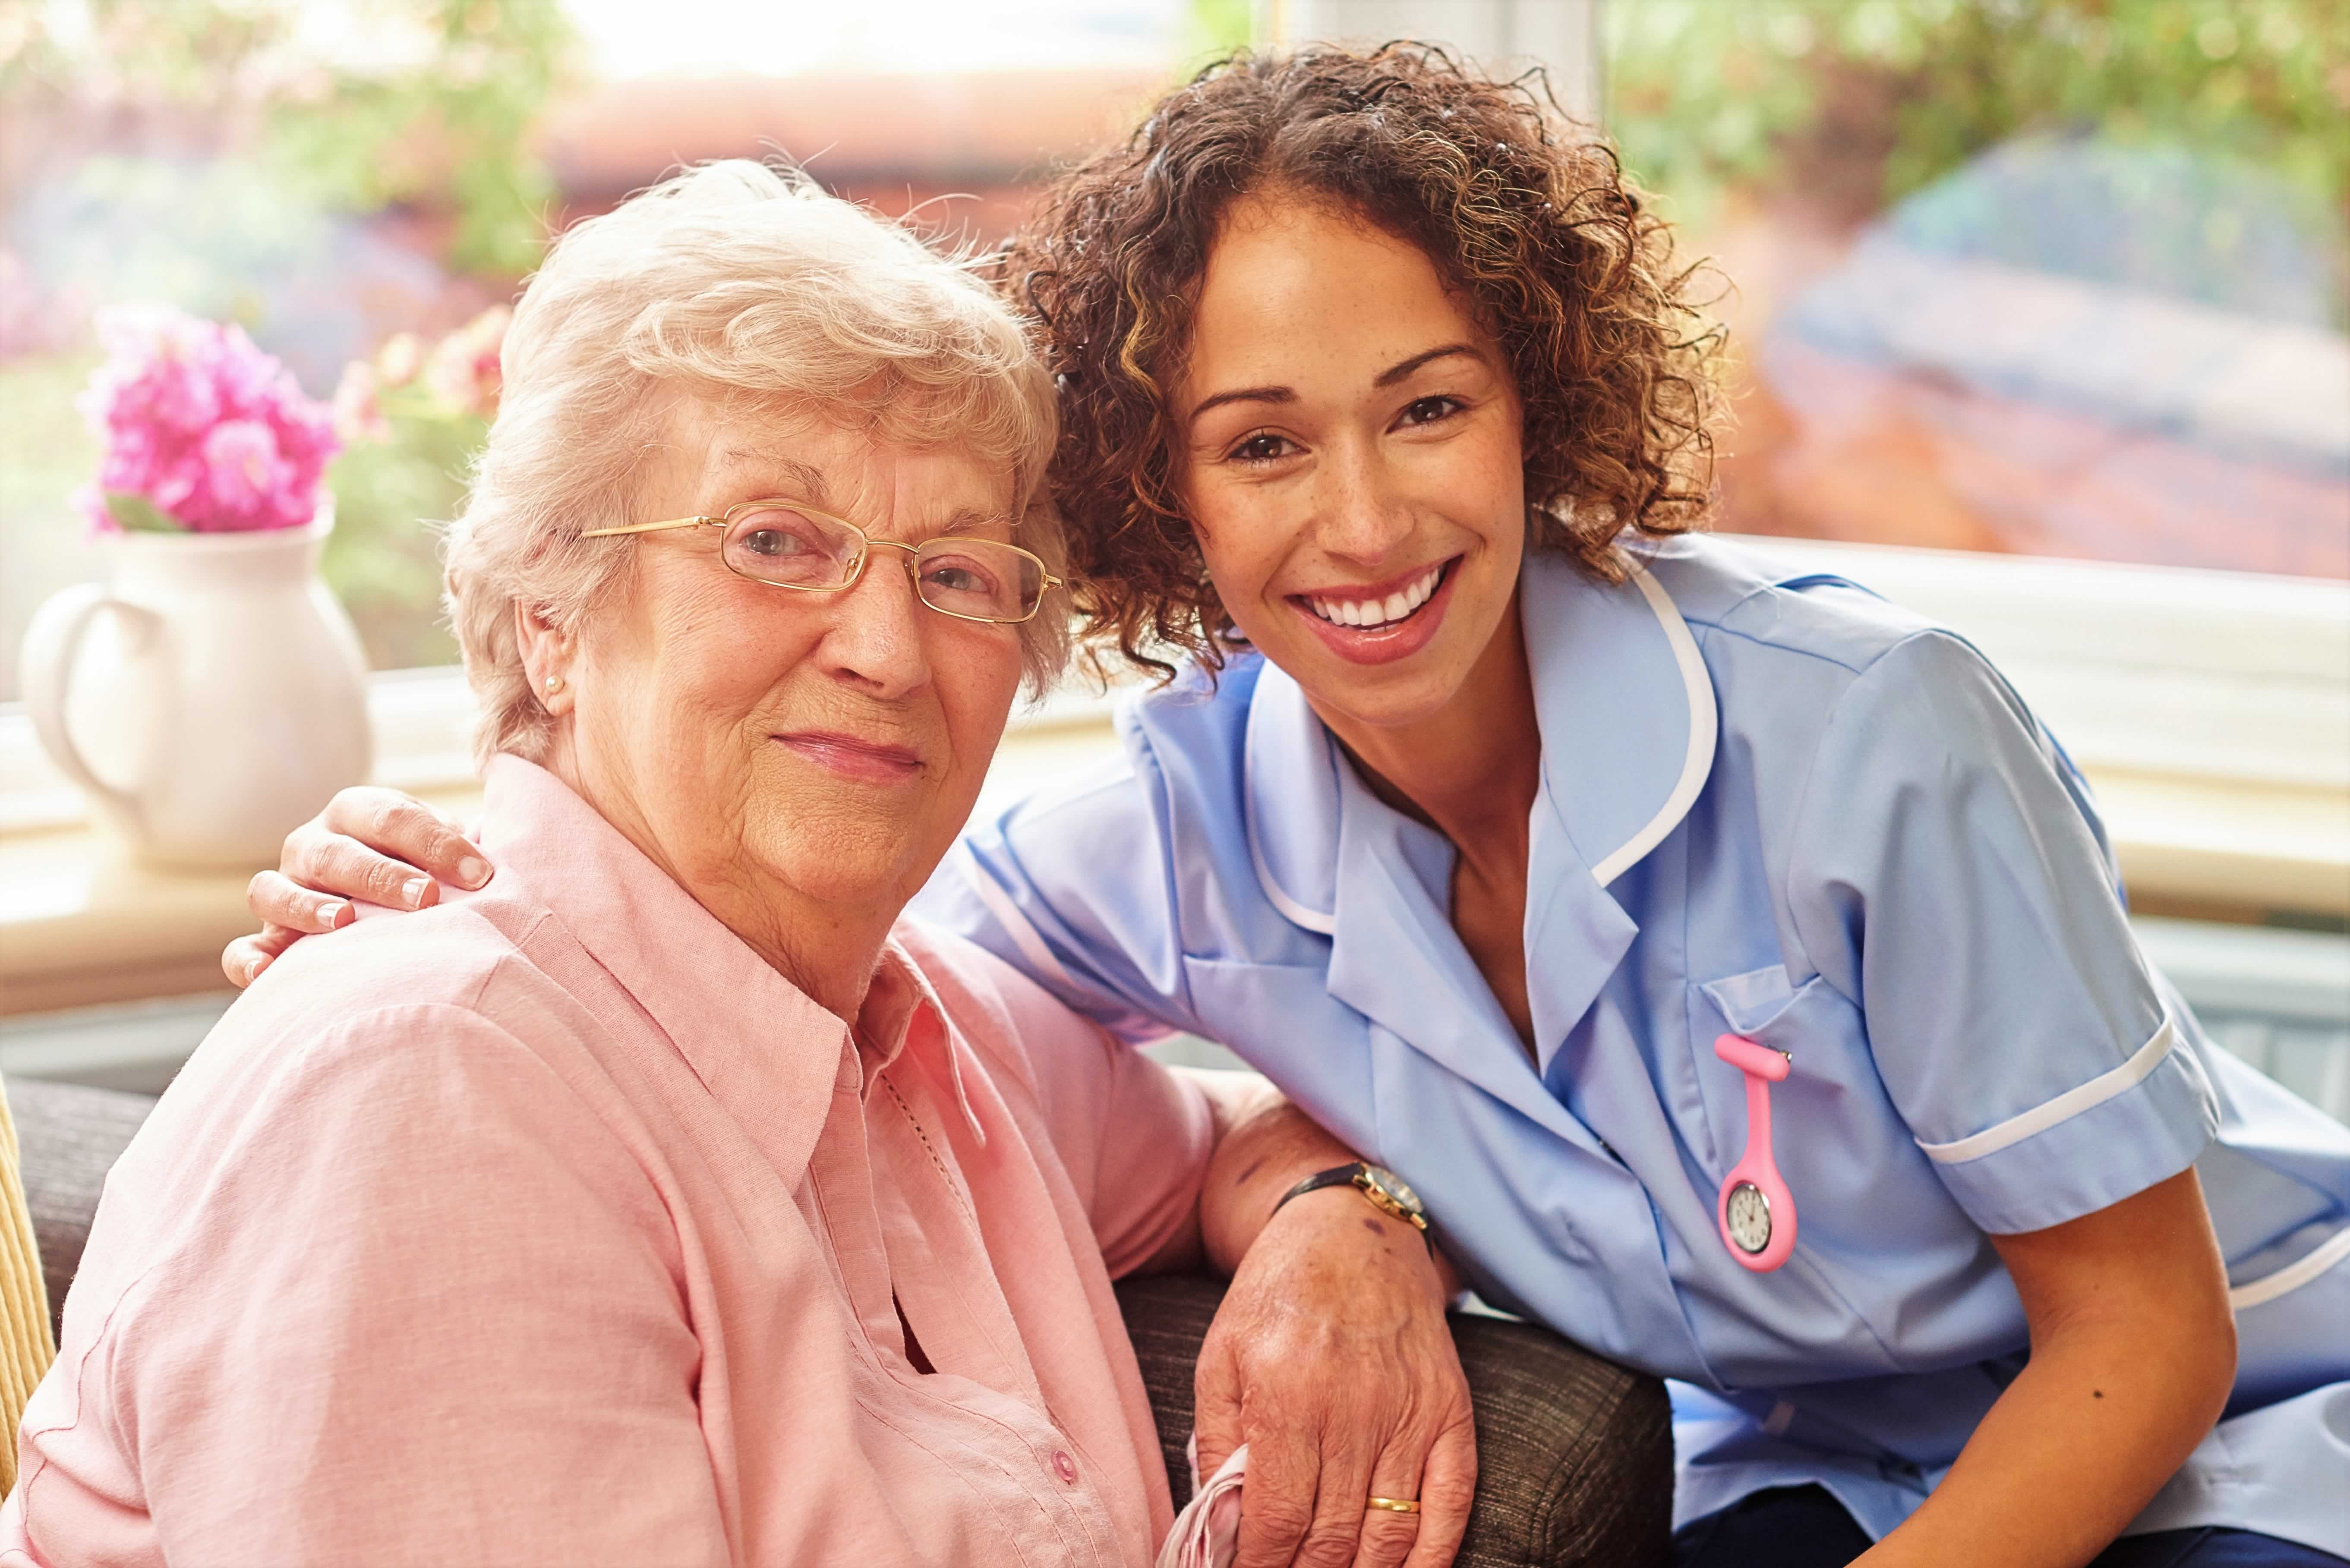 Younger woman in caregiver's attire has her arm round an older woman's shoulder as they smile from a sunlit room